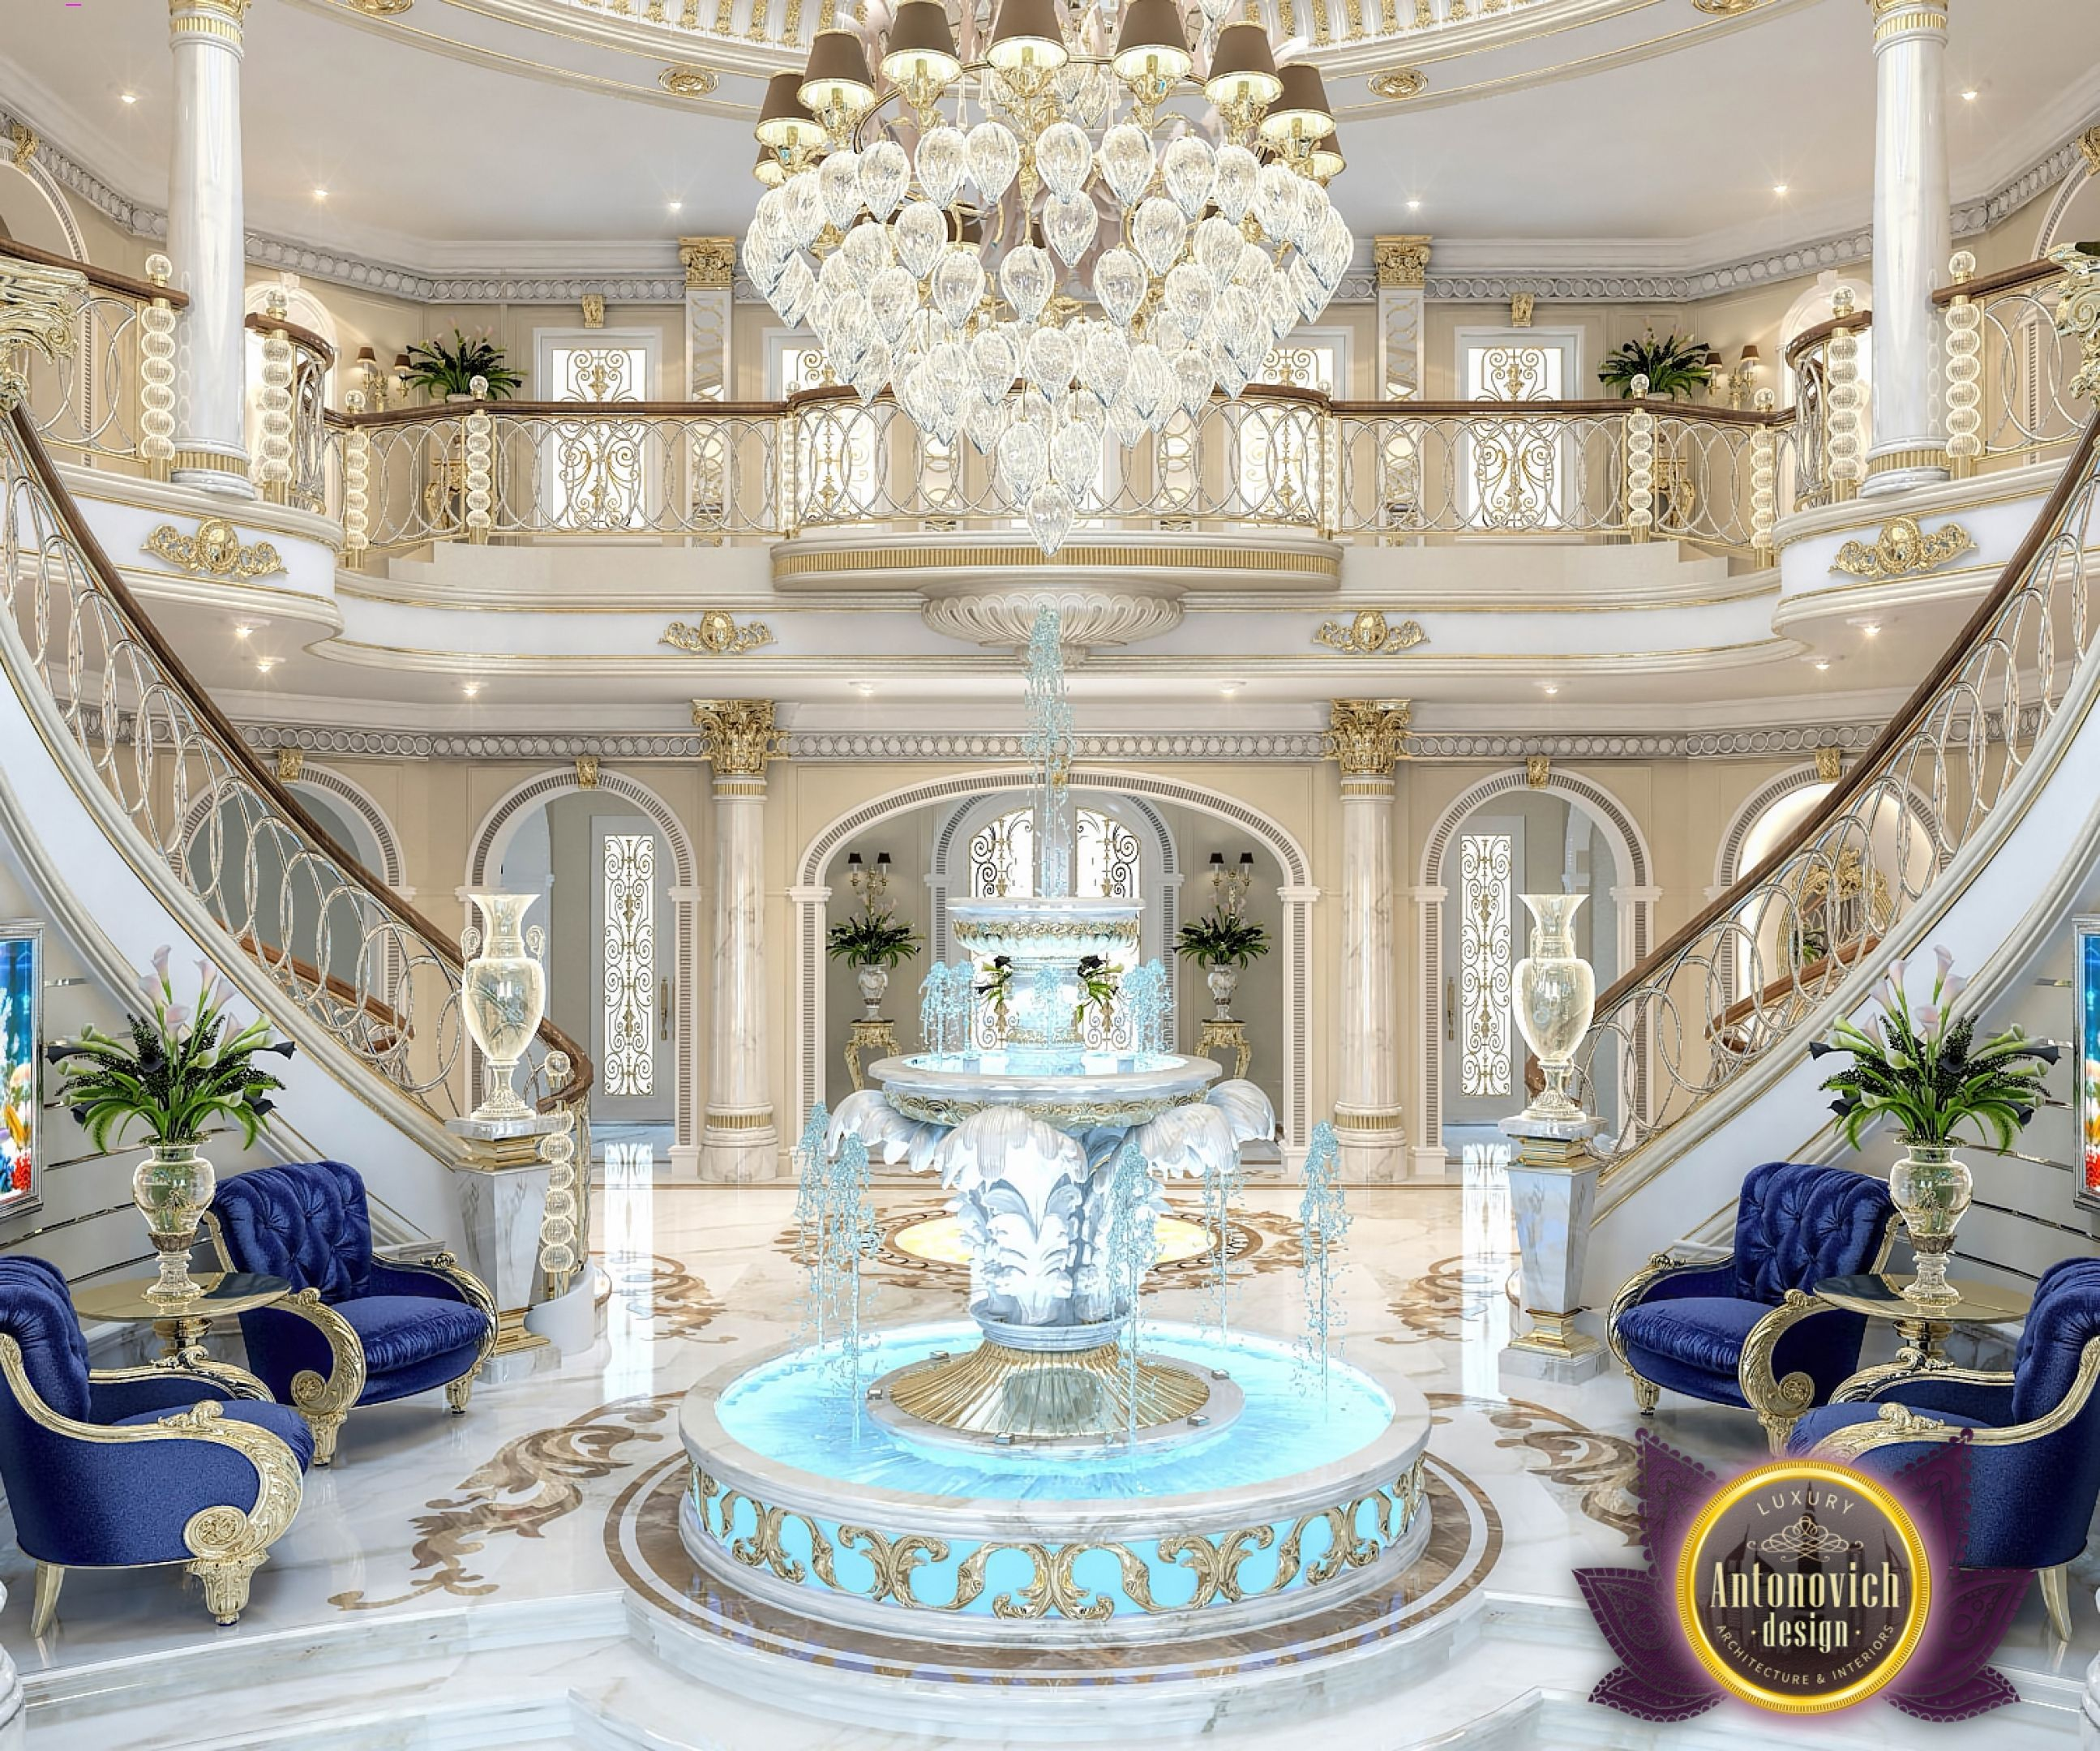 Katrina antonovich luxury interior design aetherial home - Decor oriental design interieur luxe antonovich ...